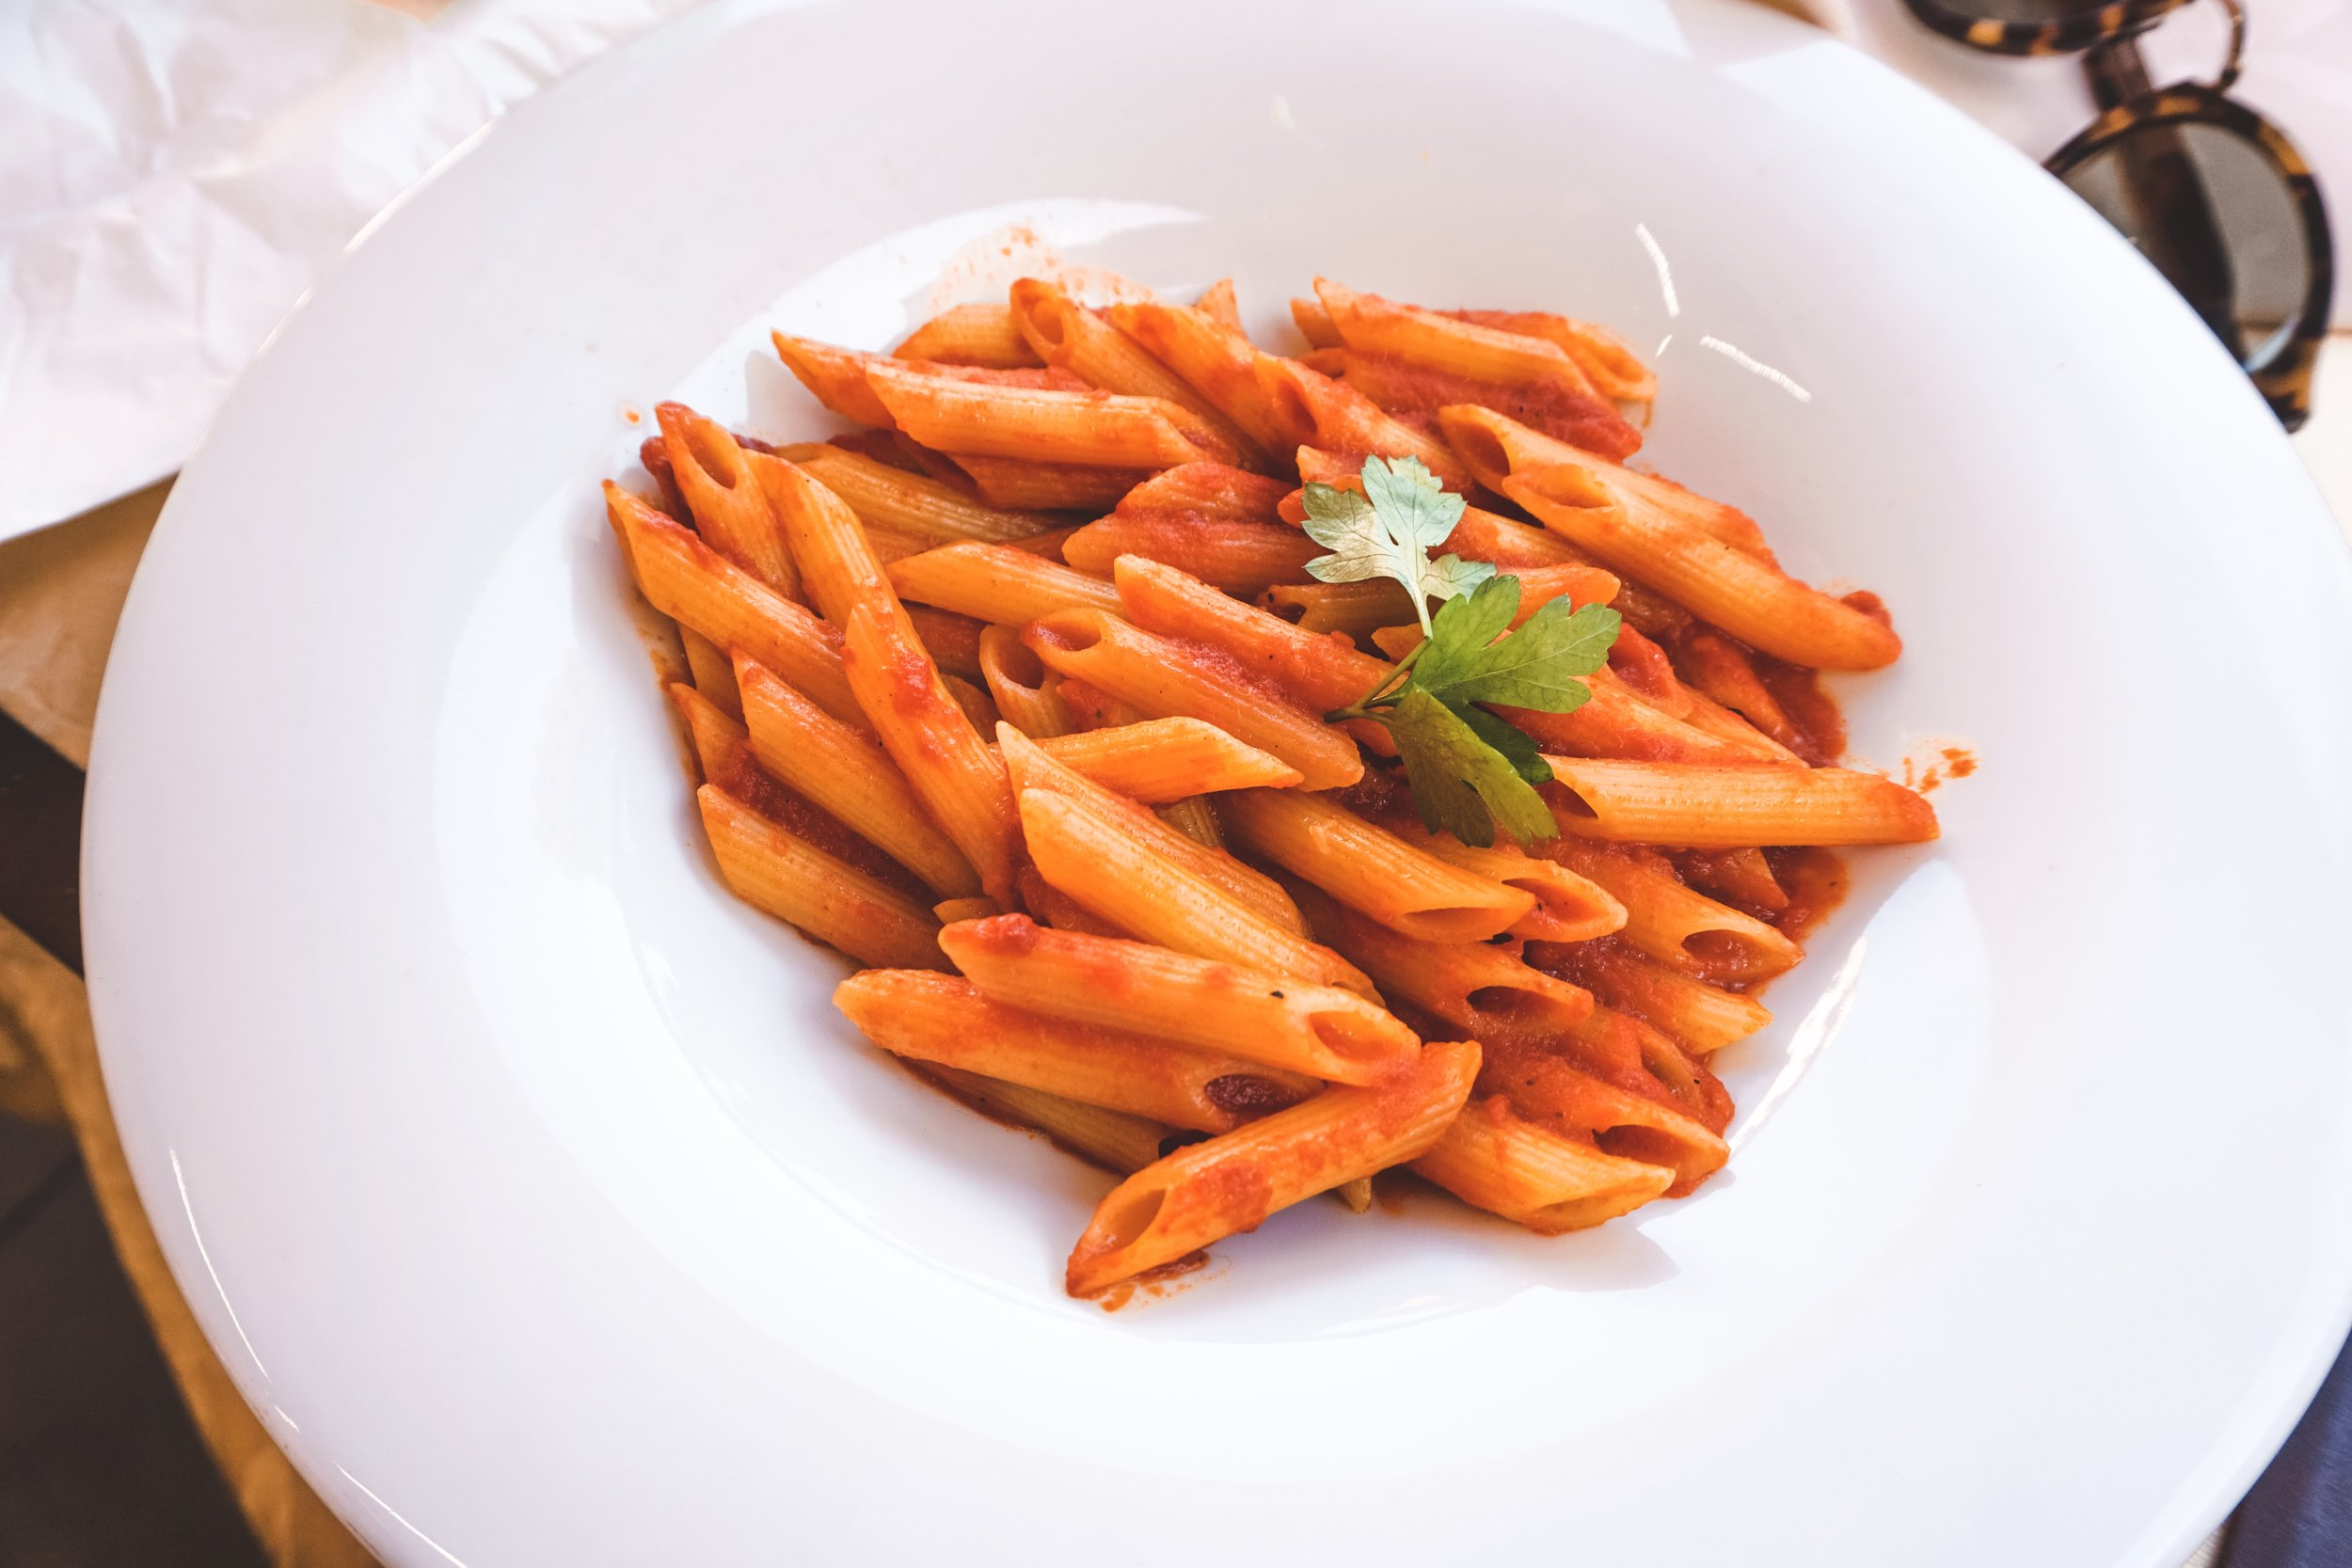 No matter where you choose to eat it, the pasta will change your life.